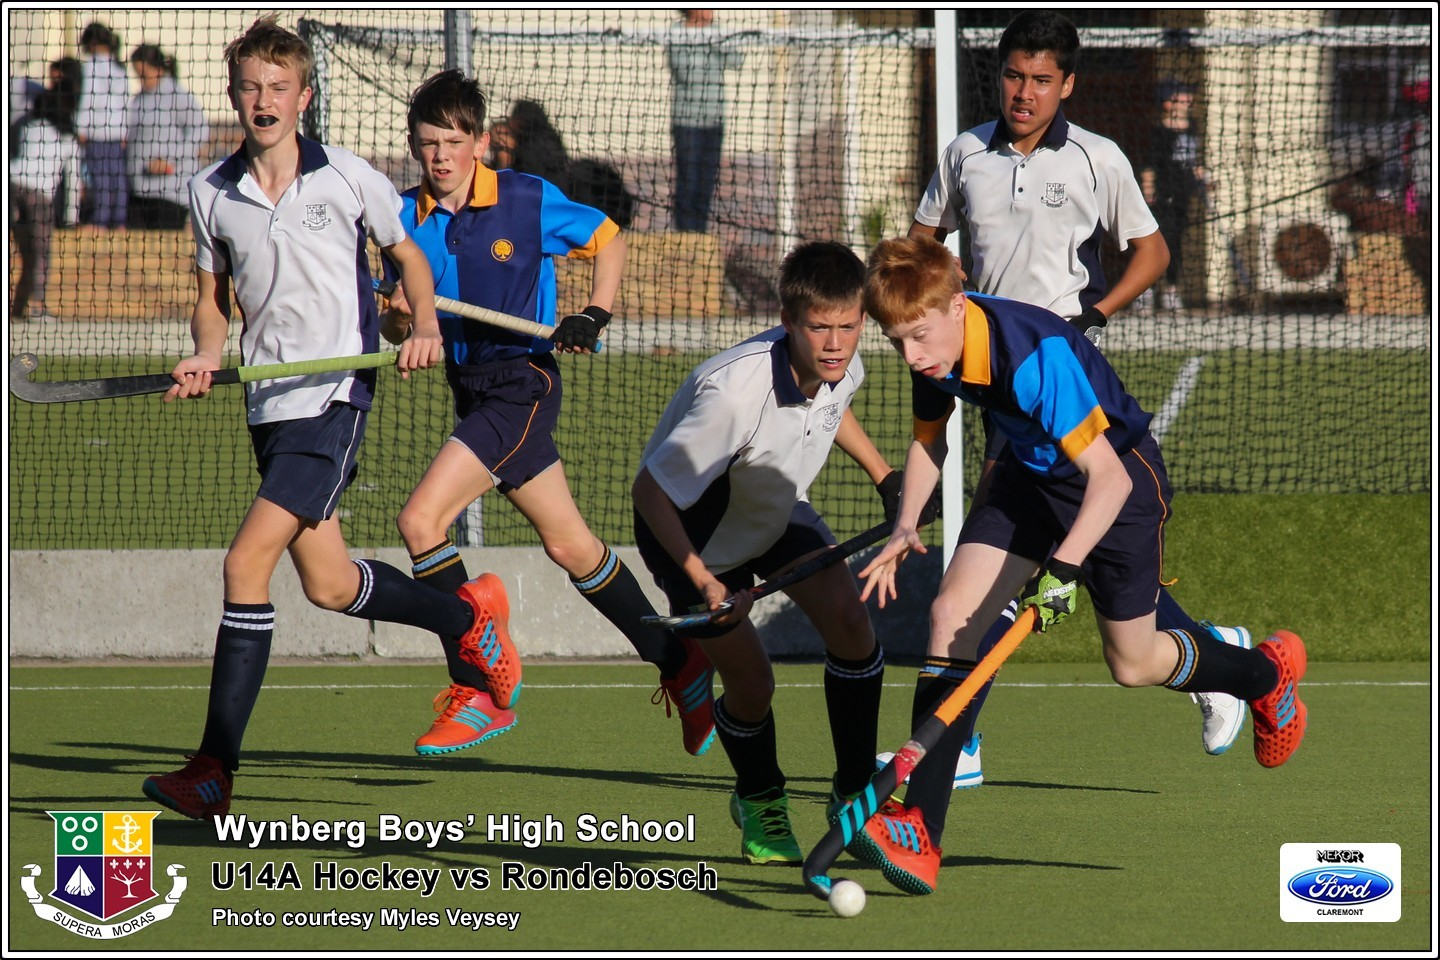 U14A vs Rondebosch, Friday 3 August 2018